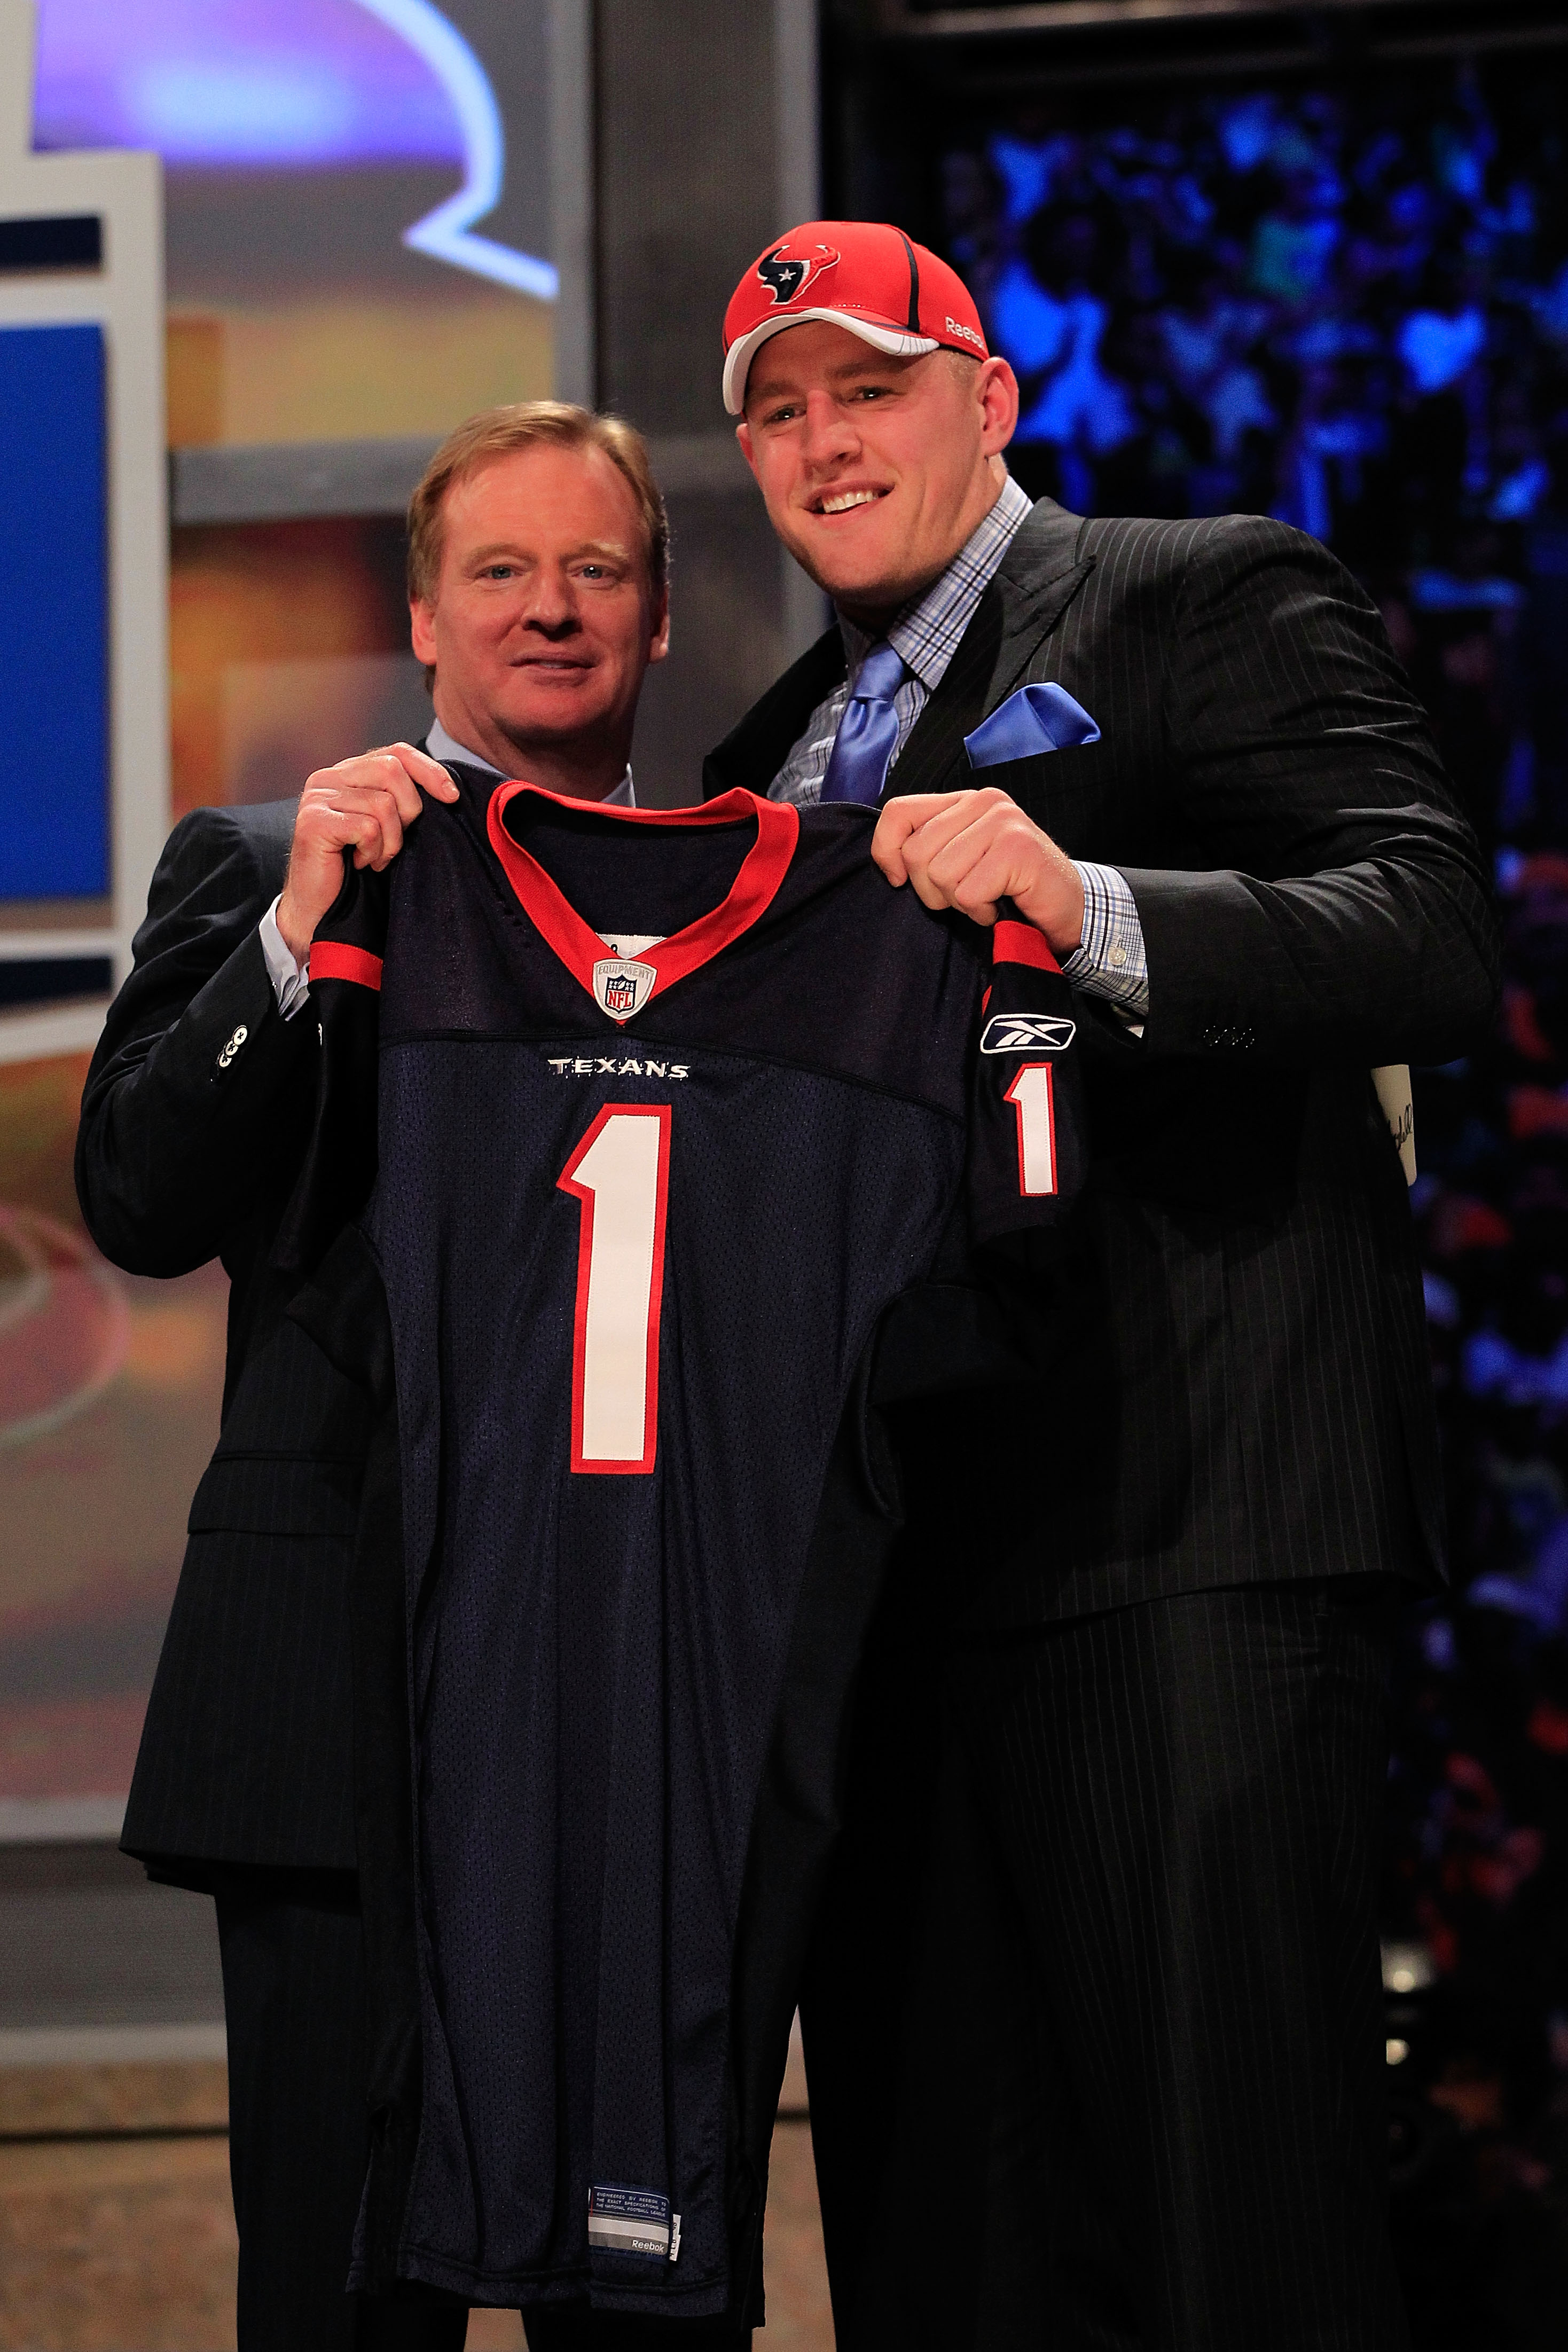 You looked the part of a Texan on draft night, J.J.